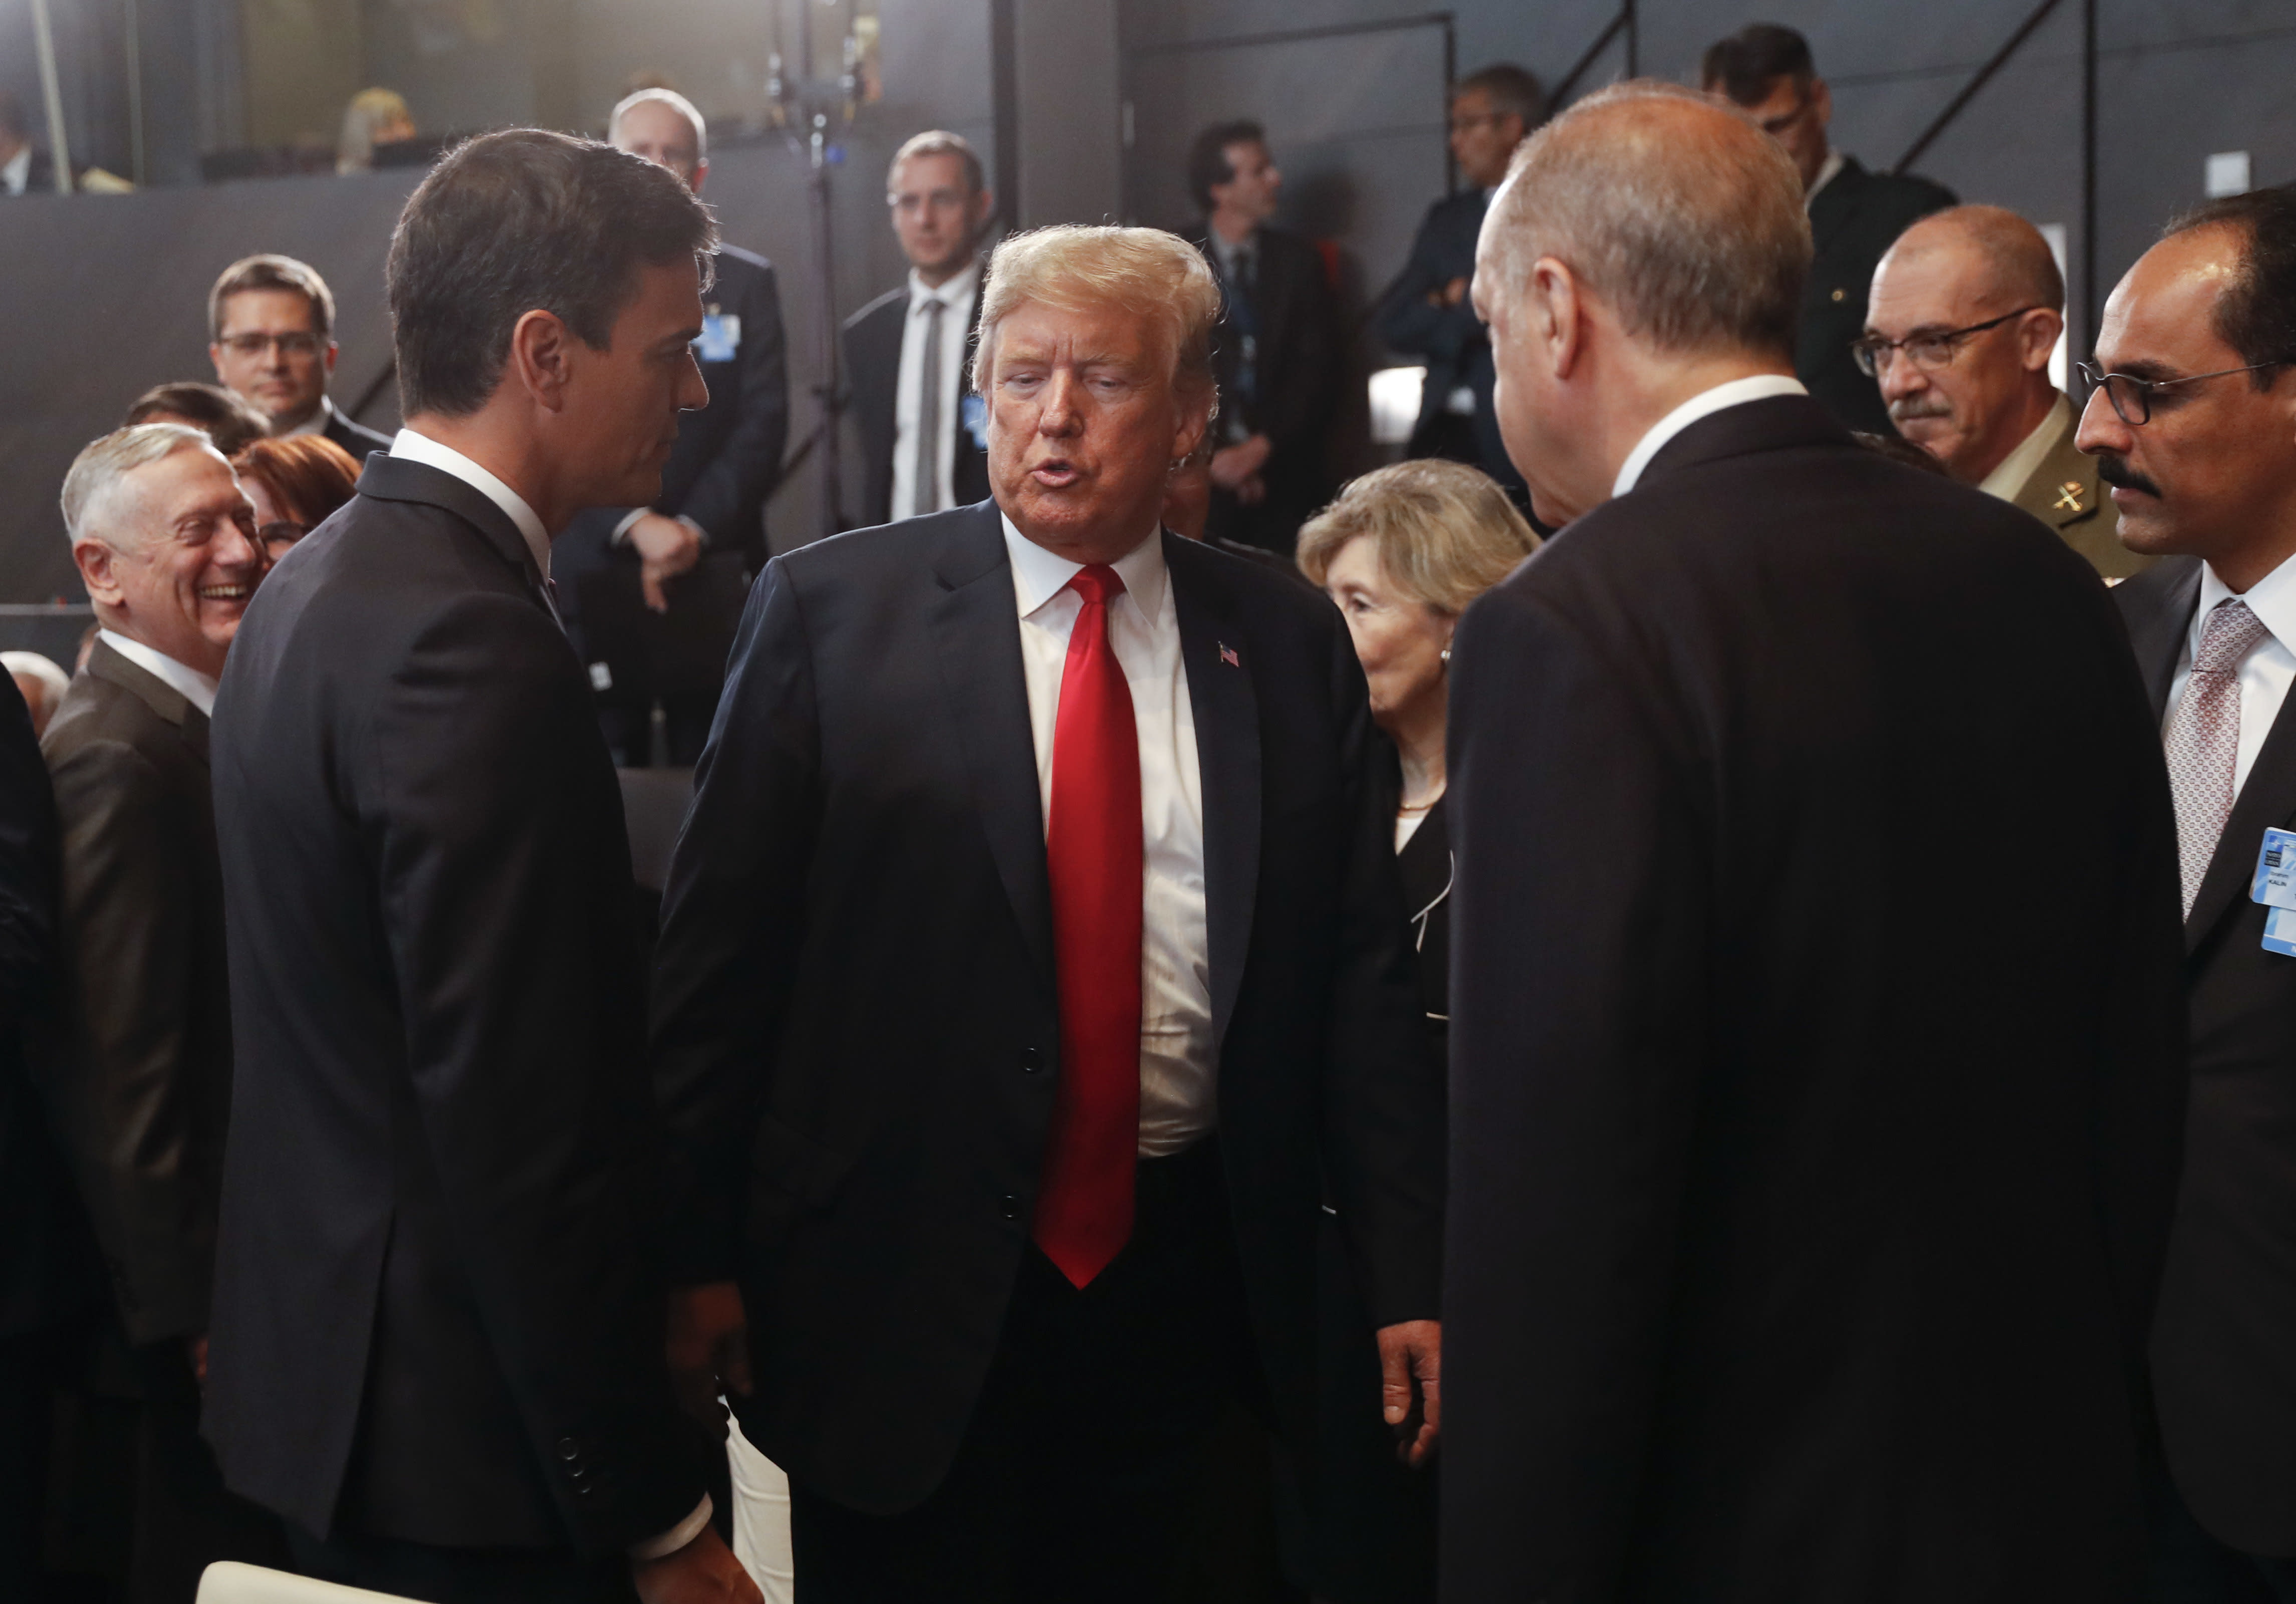 No shove, but Trump body language speaks to frosty relations